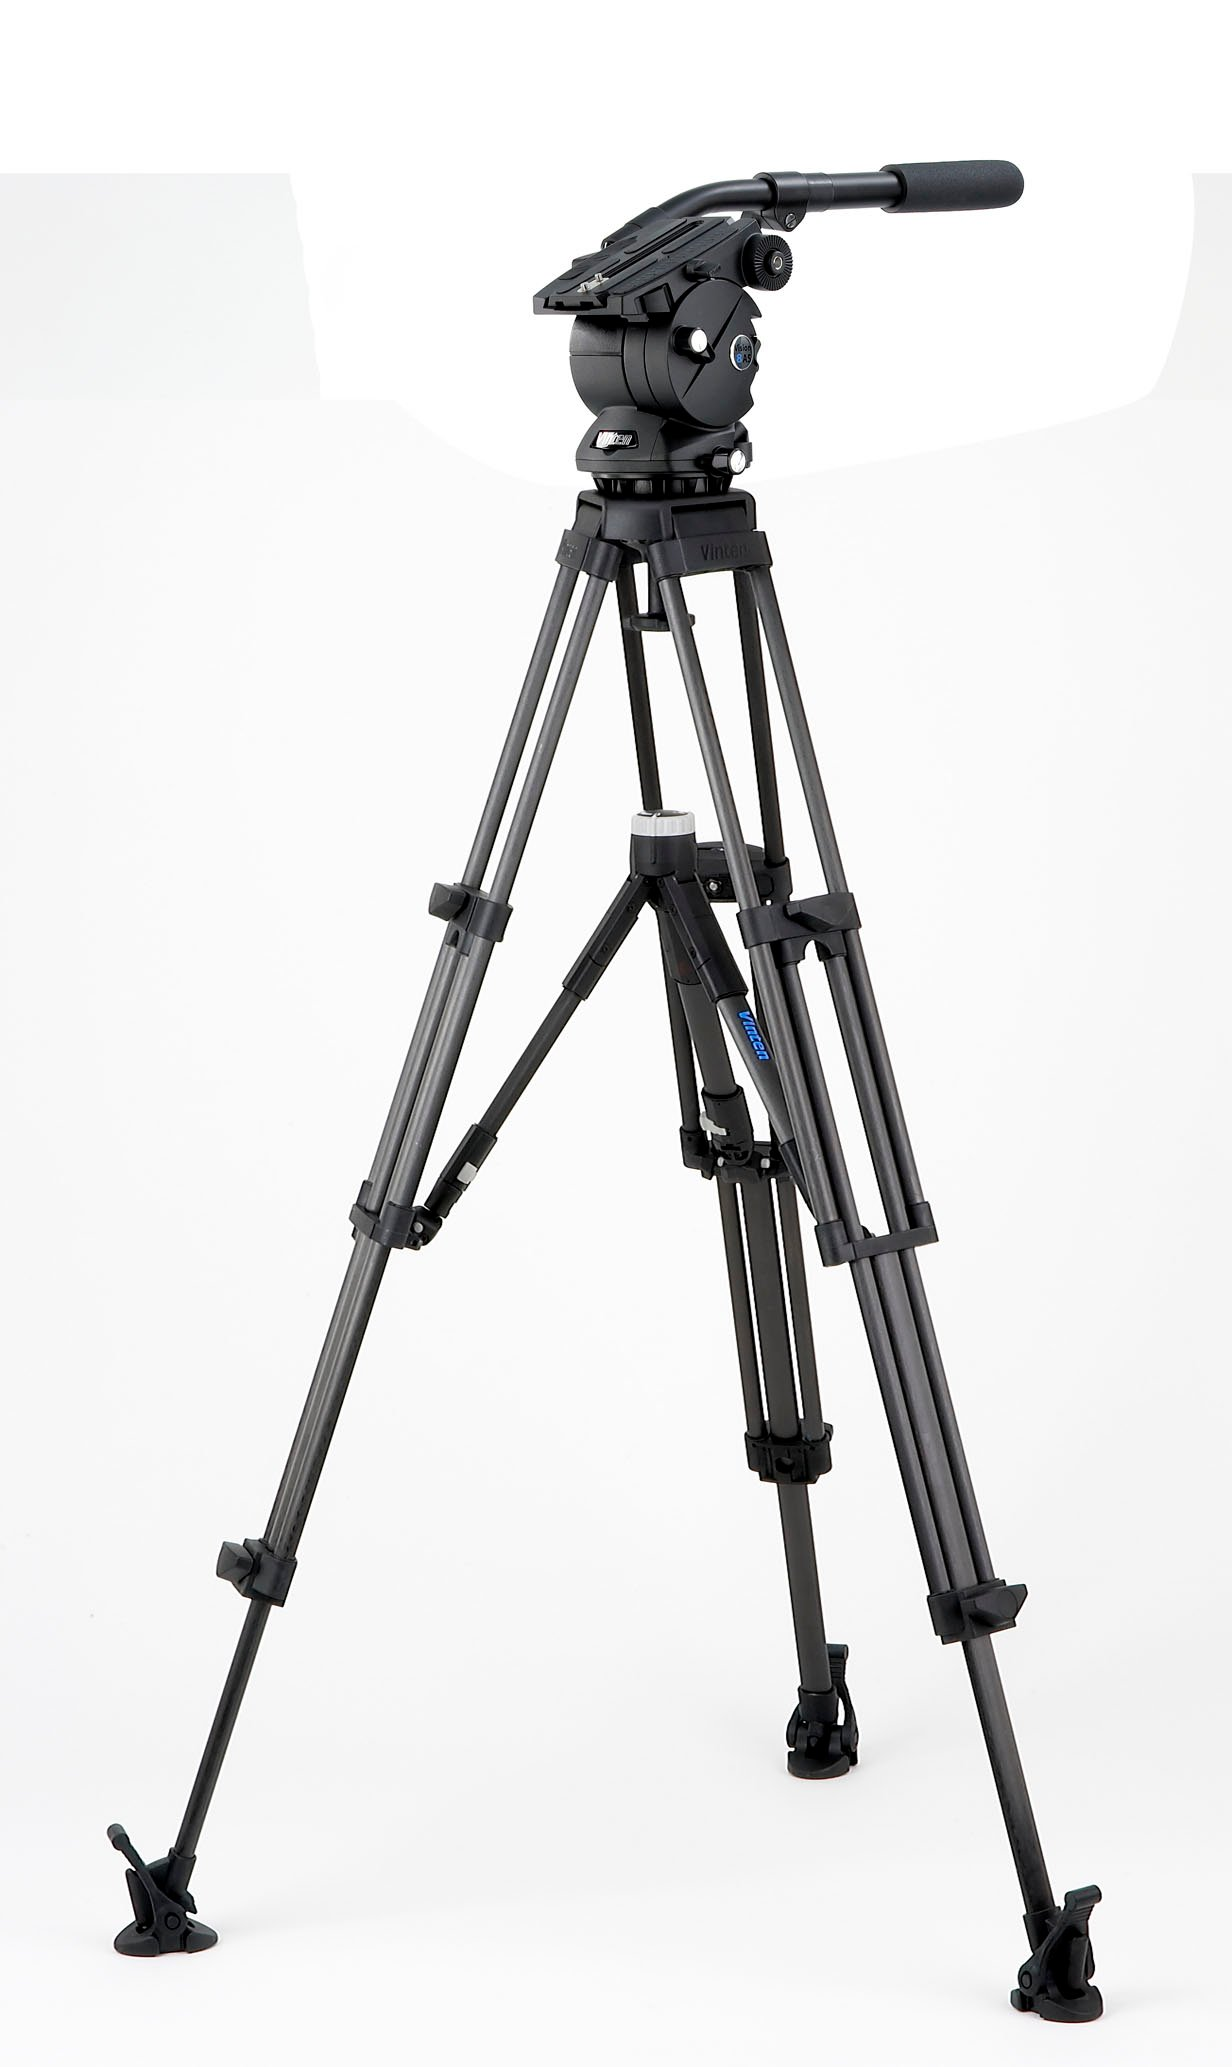 with Two-Stage CF Pozi-Loc Tripod, Ground Spreader, and Soft Case